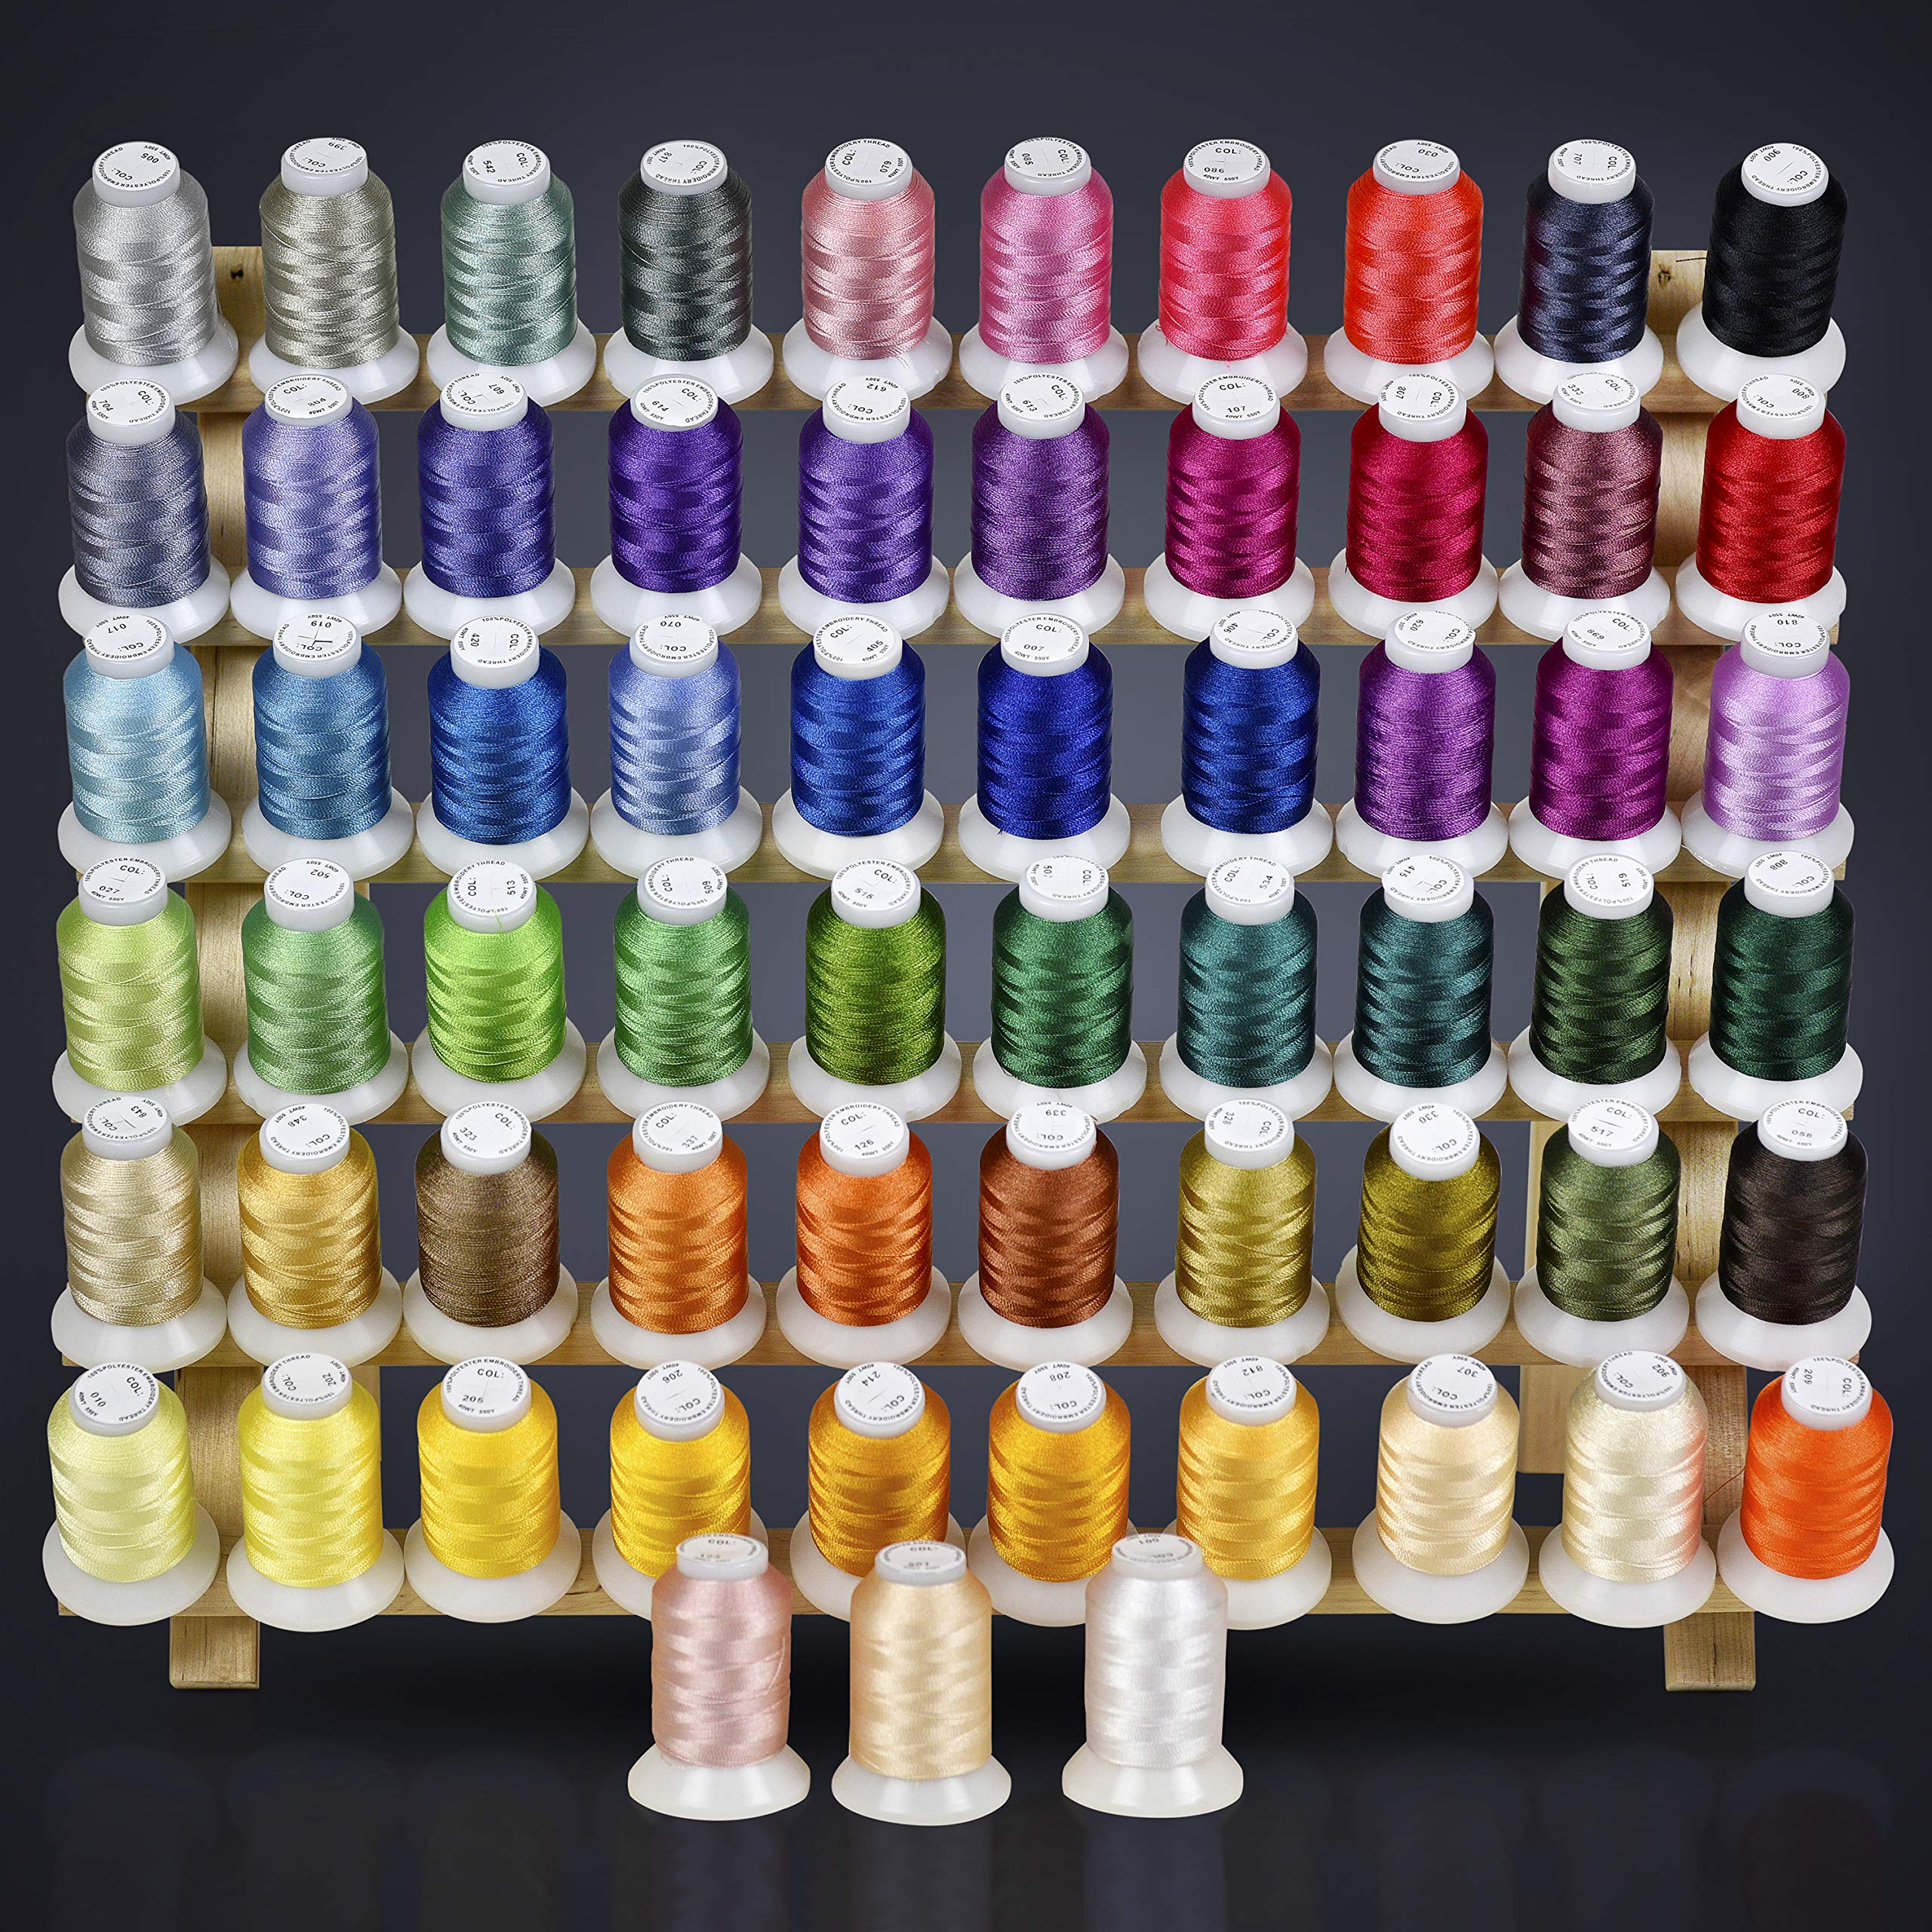 63 Brother Colors Embroidery Machine Thread Set 120D/2 40weight for Brother Babylock Janome Singer Pfaff Husqvarna Bernina Machines by ThreadNanny